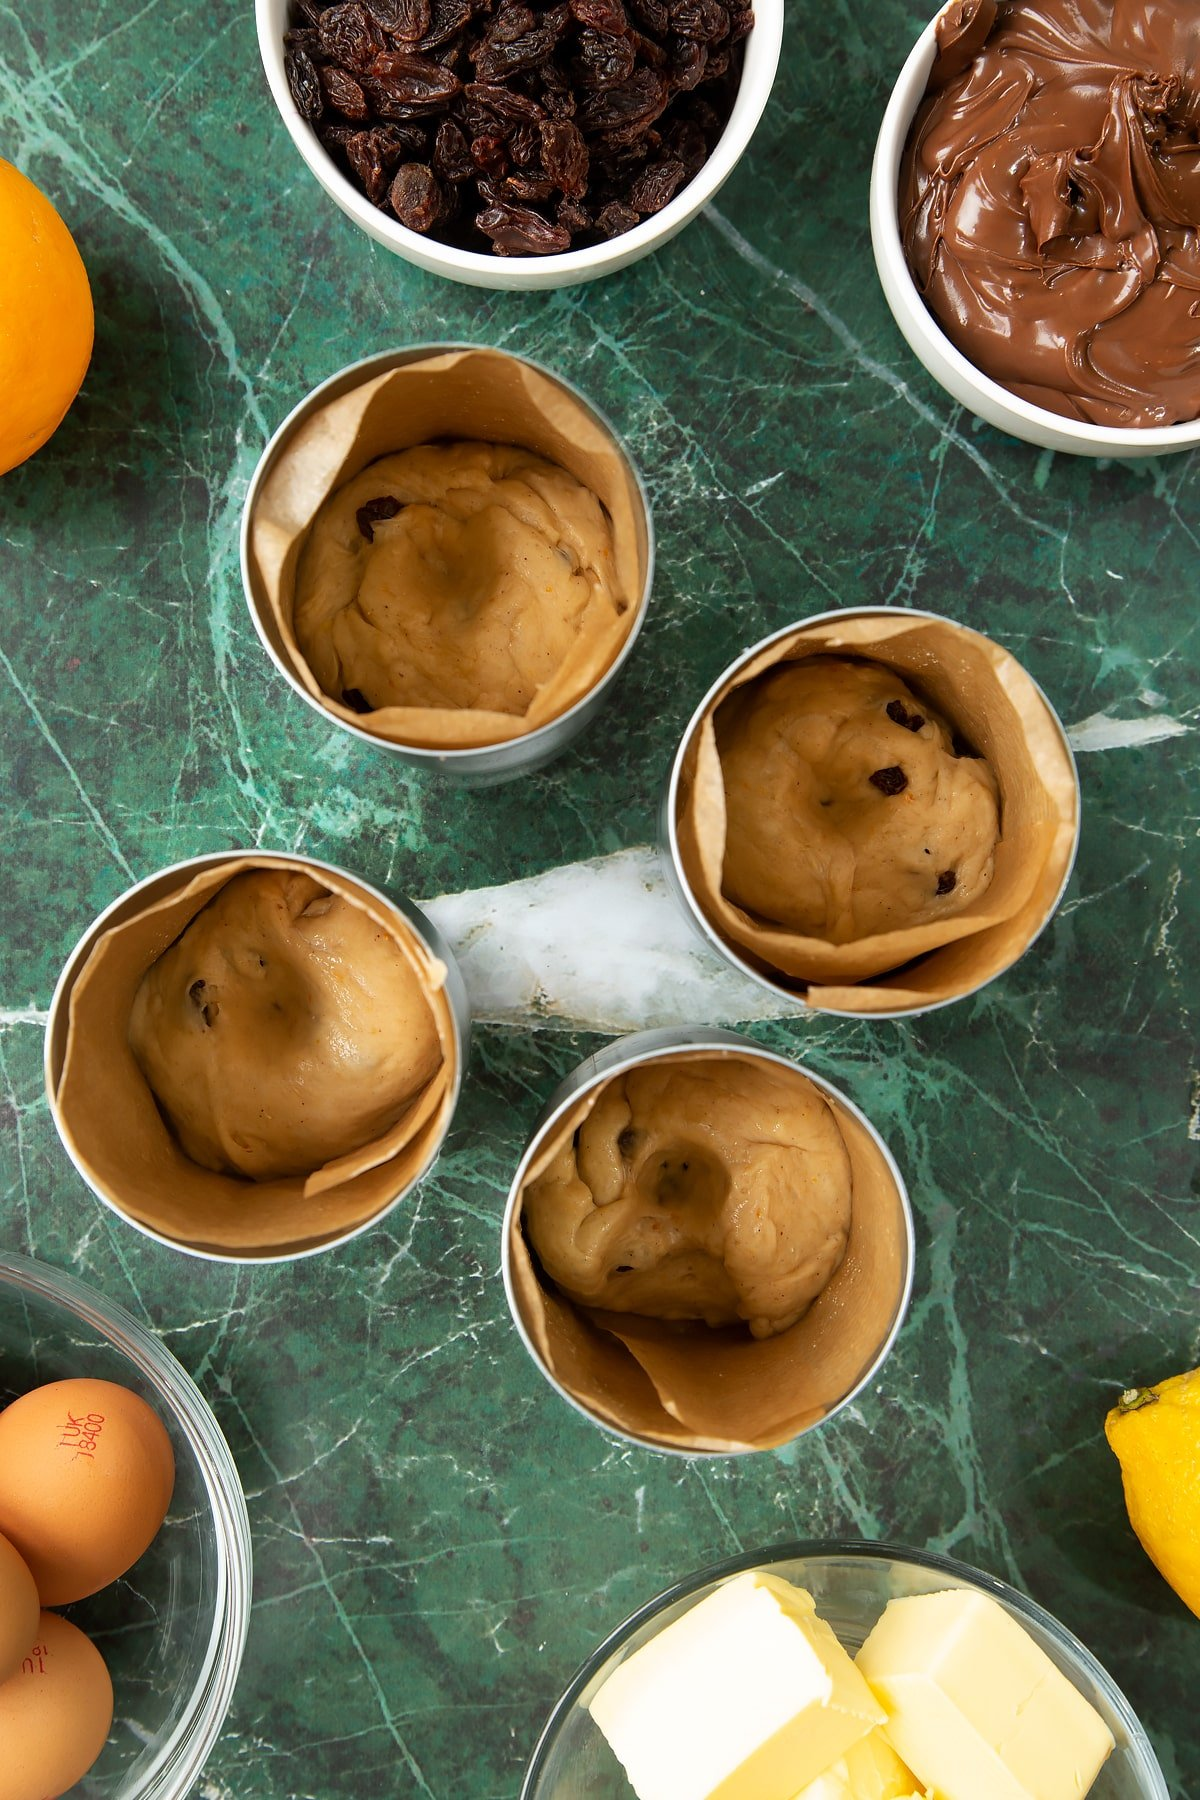 4 lined tin cans with a little dough at the bottom. Each has a well pushed into it. Ingredients to make Nutella panettone surround the cans.